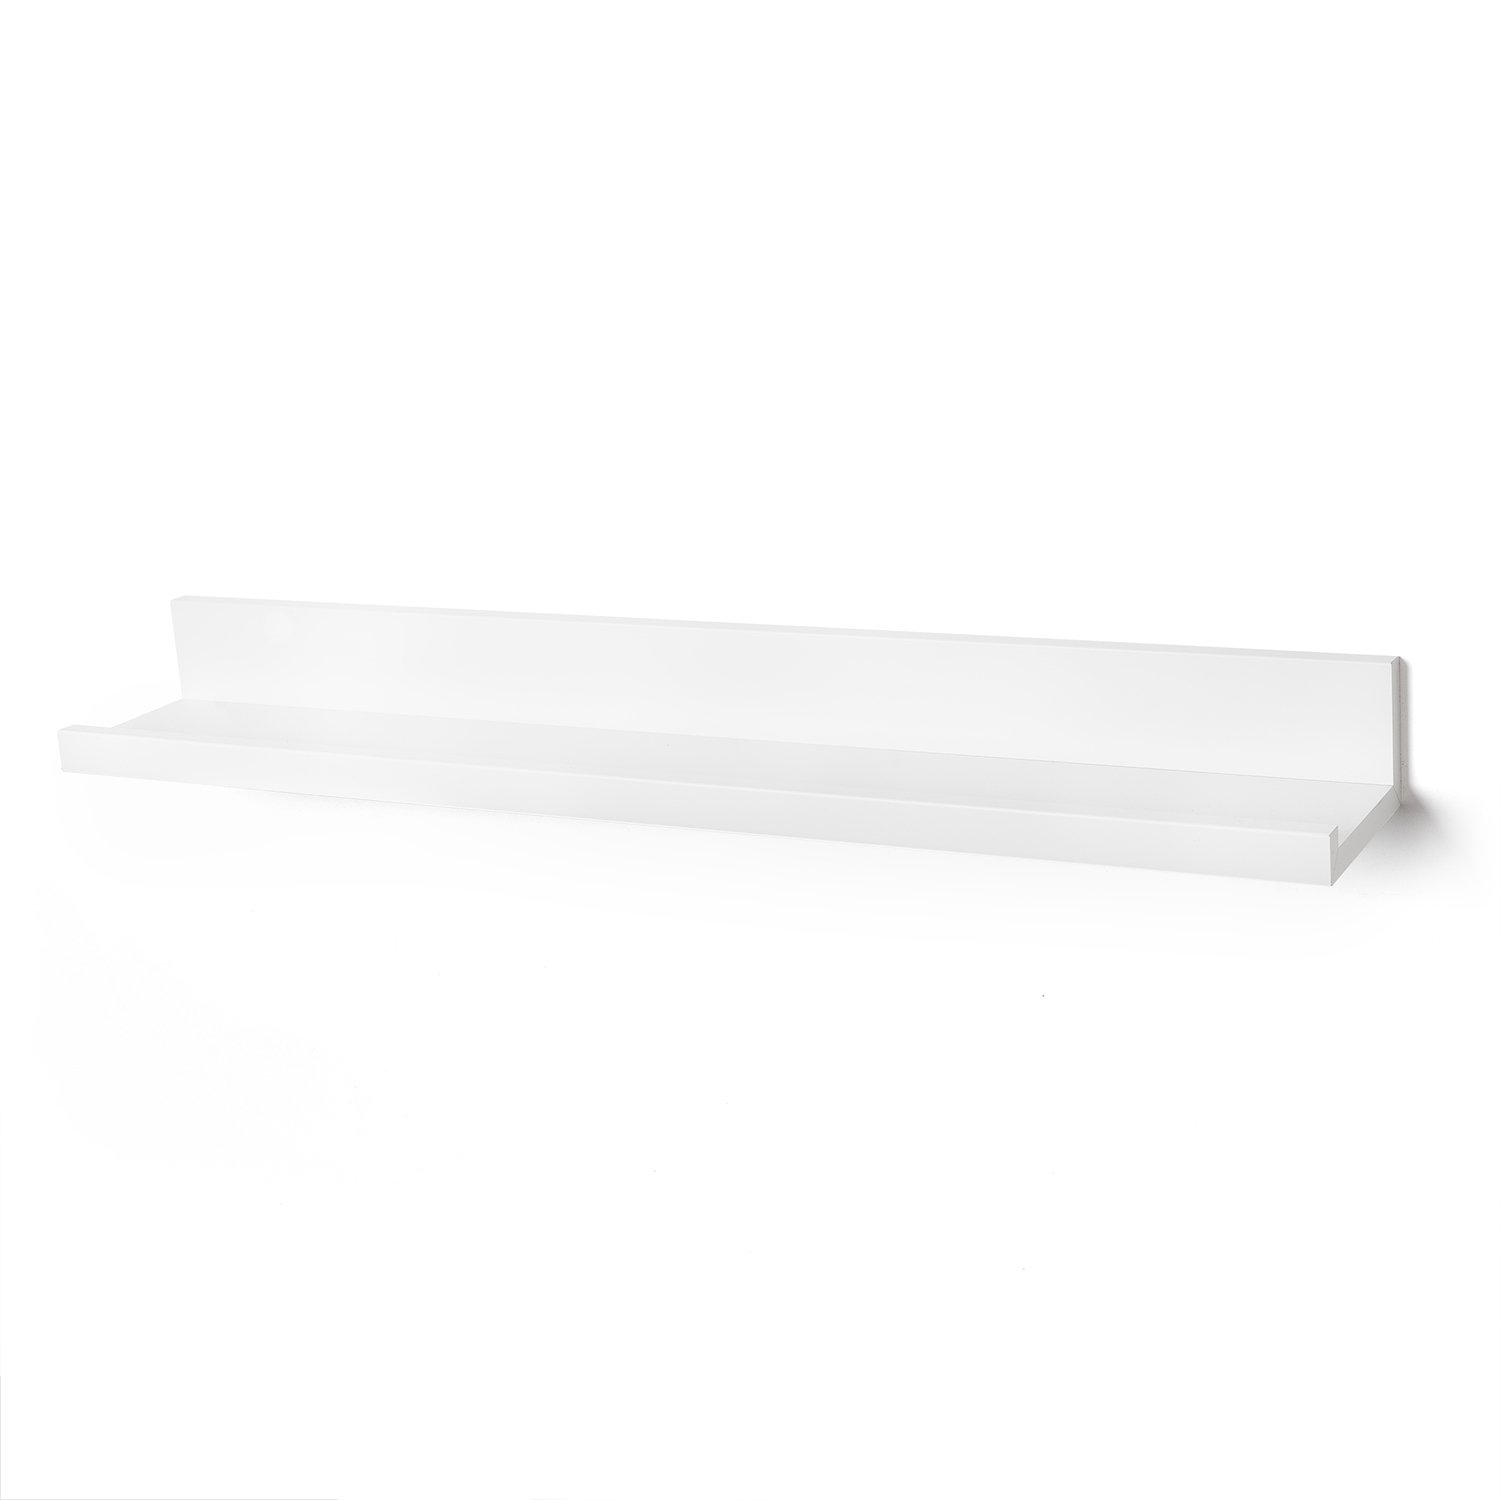 Americanflat White 36 Inch Floating Wall Shelf